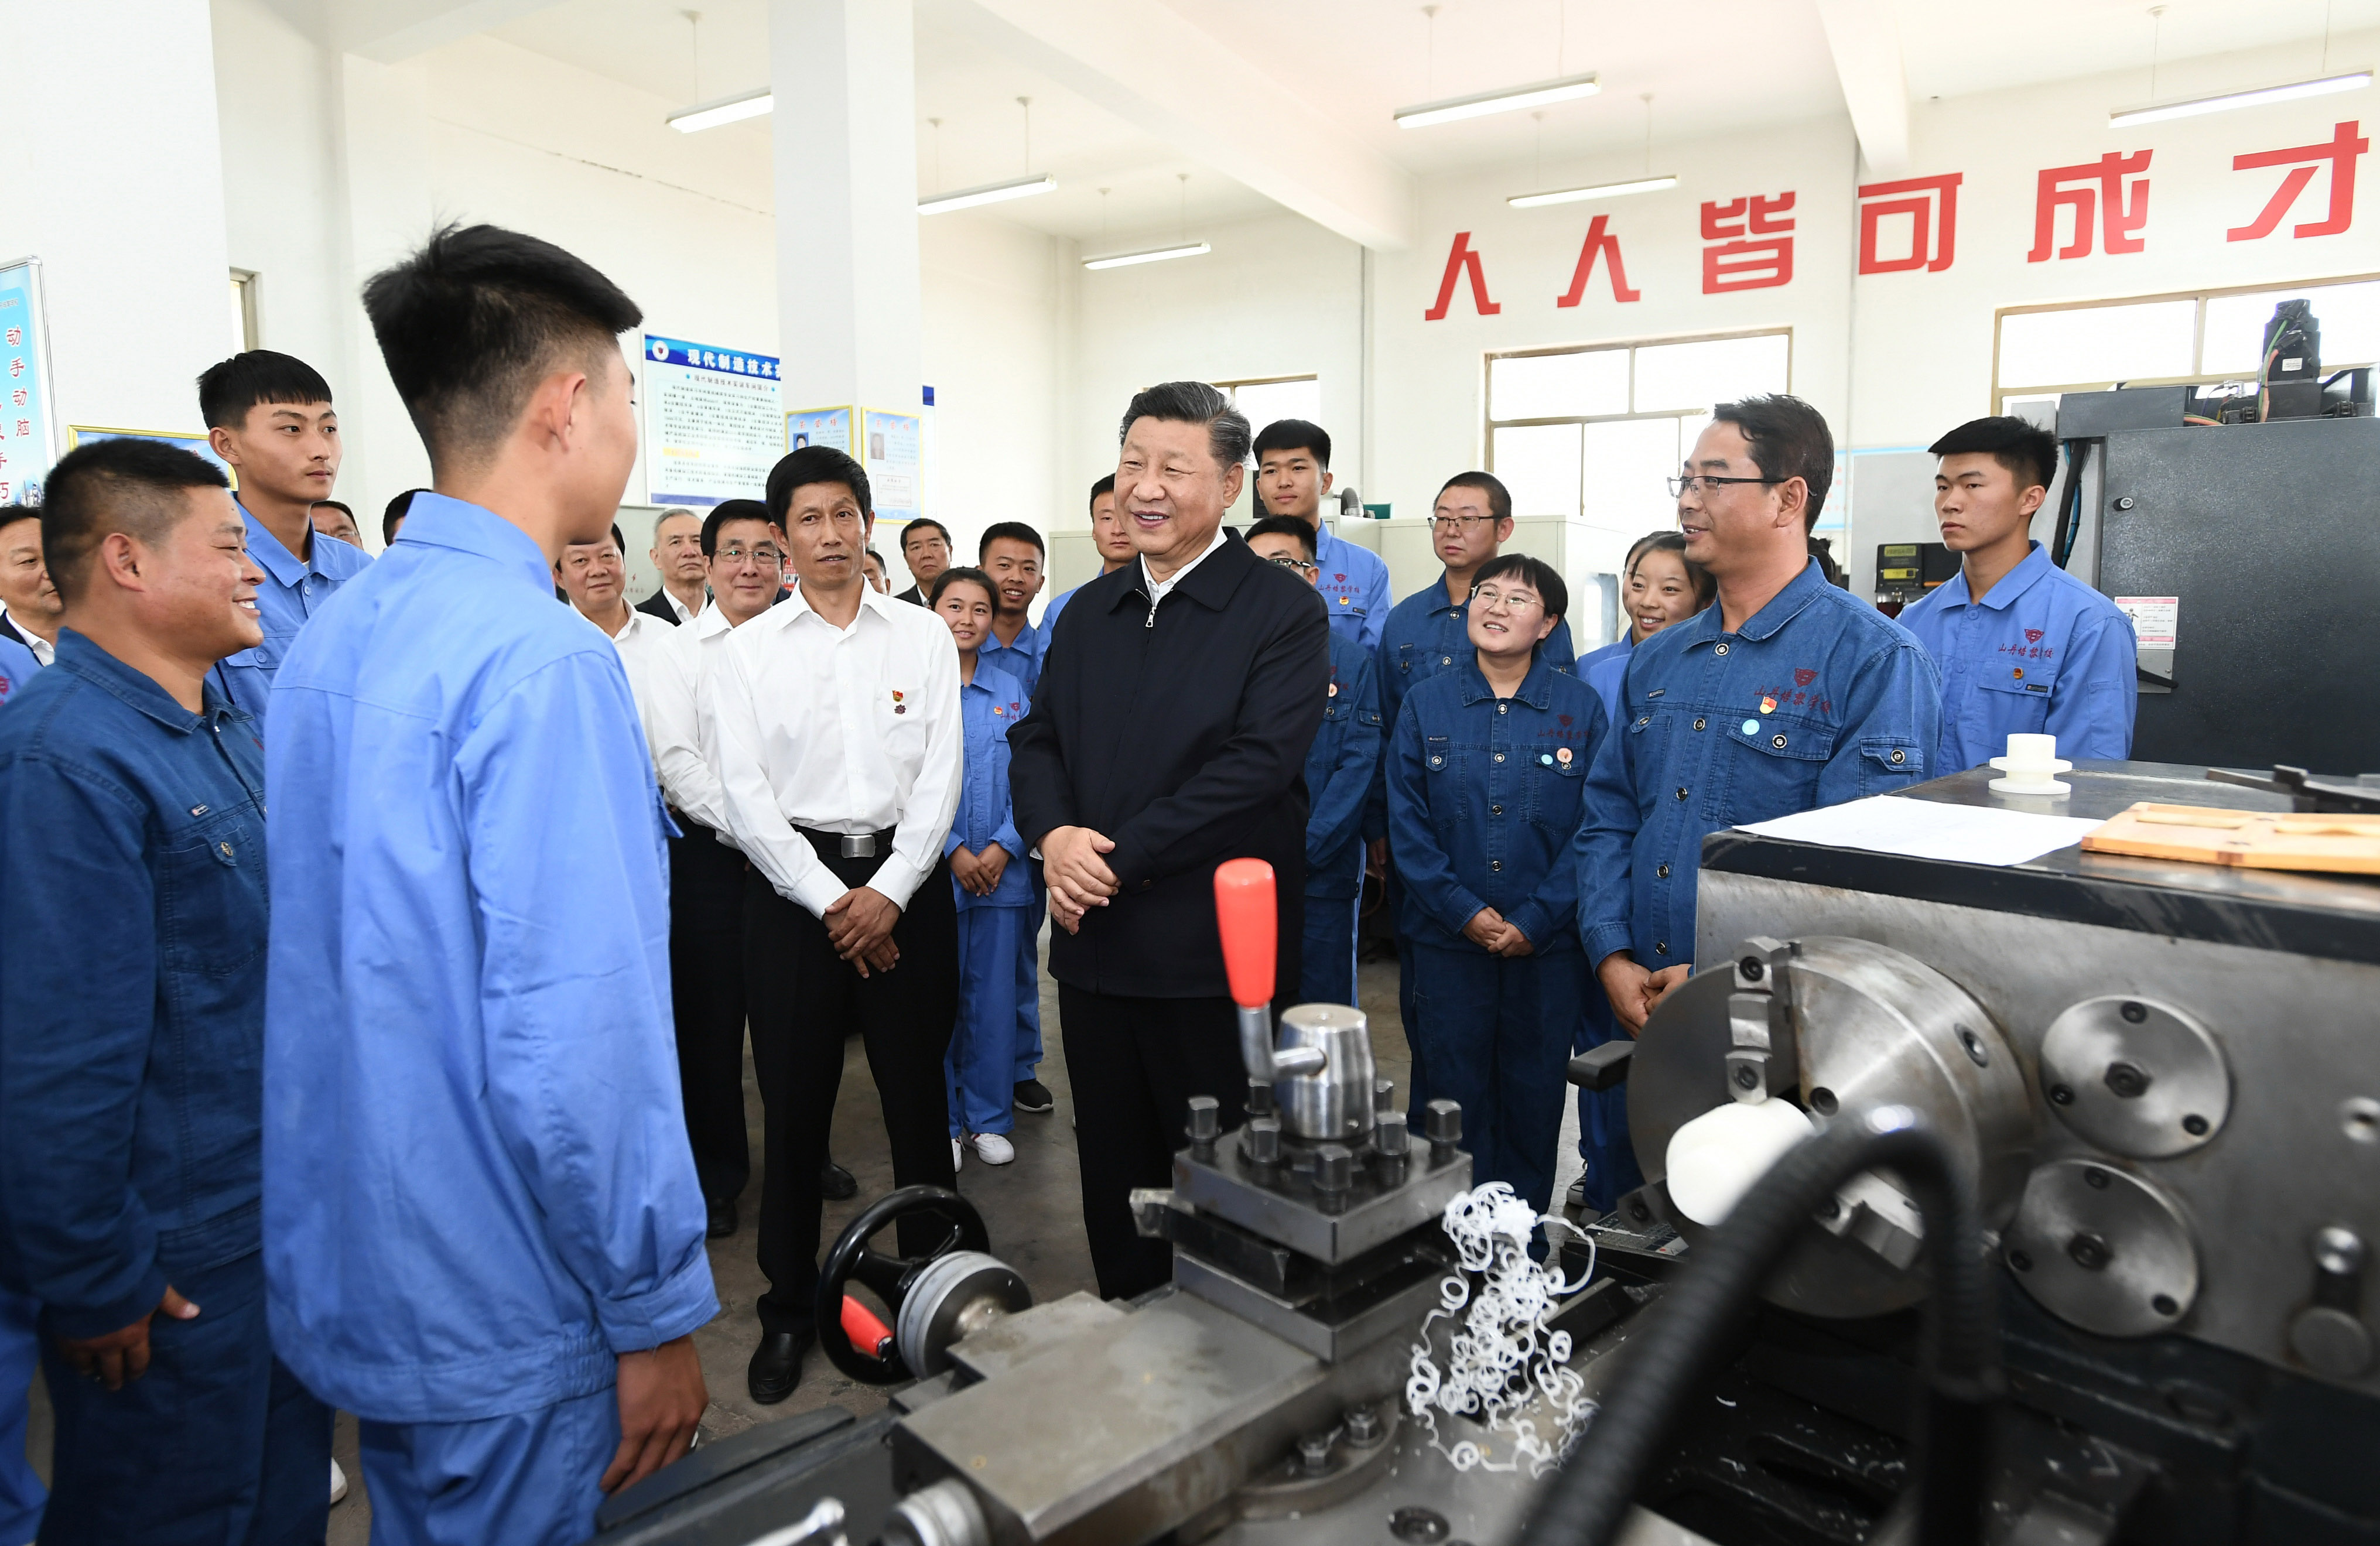 Xi stresses importance of vocational education